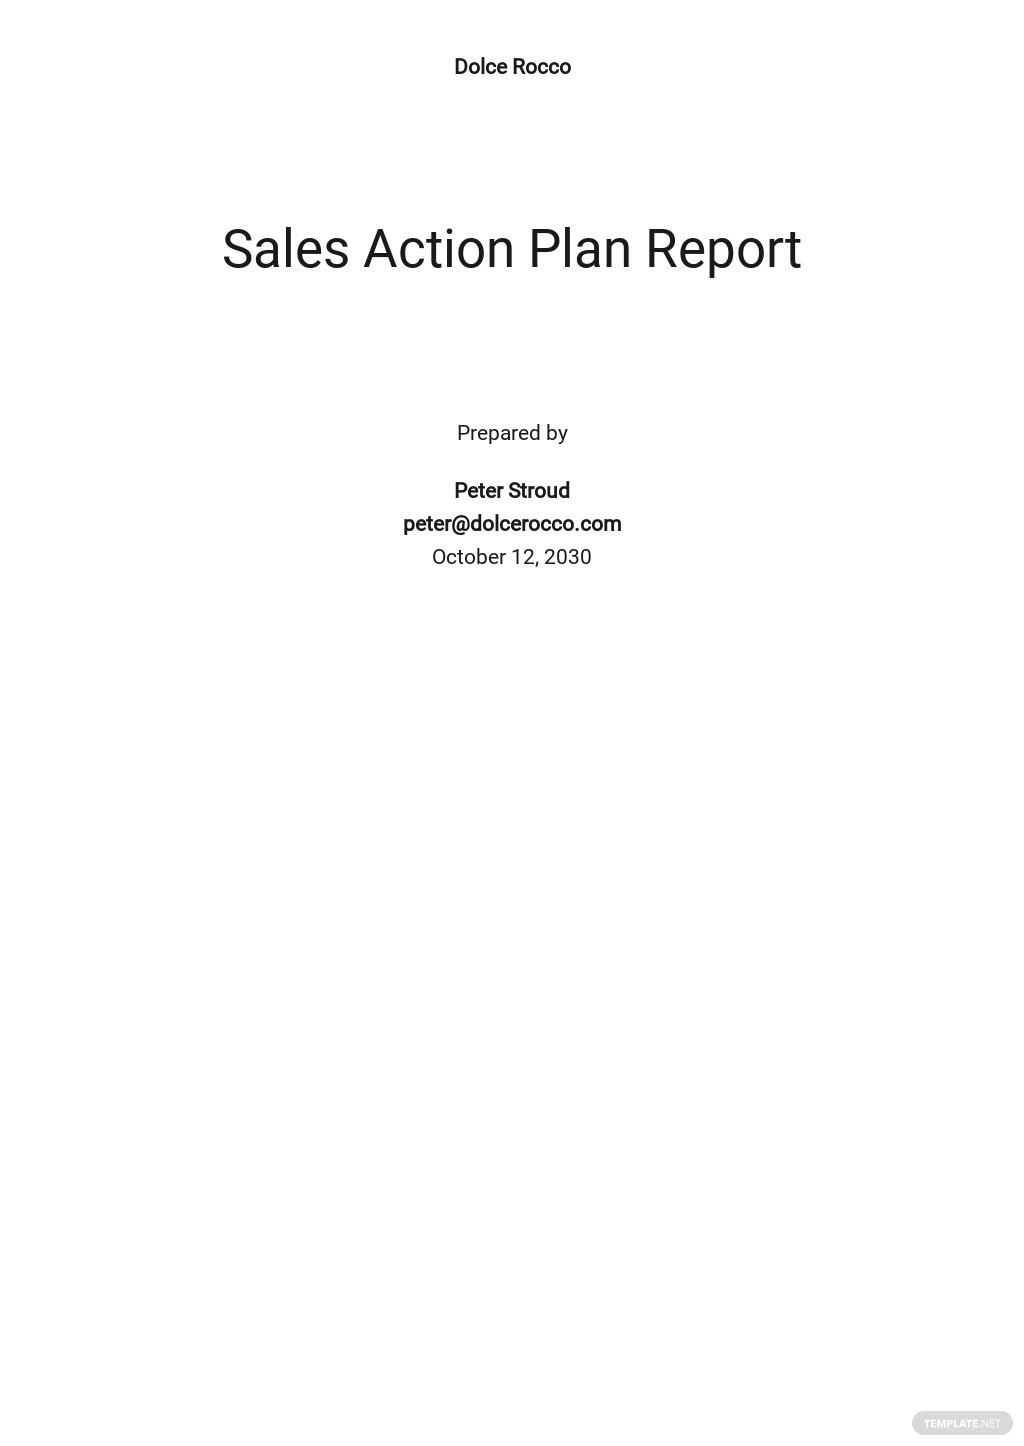 Sales Action Plan Report Template